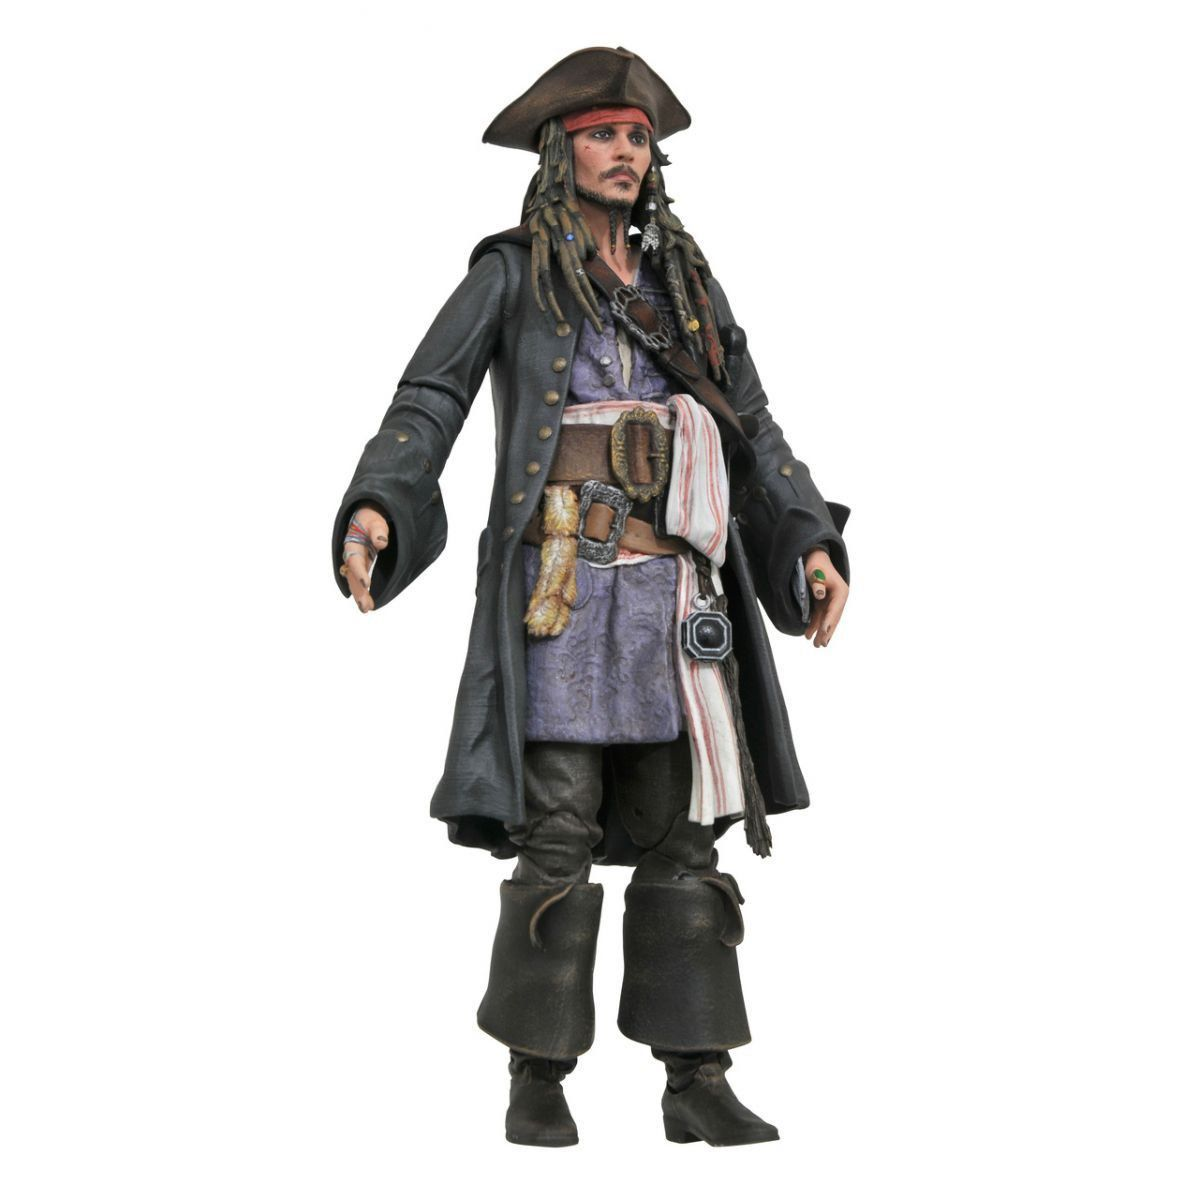 PRÉ VENDA: Boneco Jack Sparrow: Piratas do Caribe: A Vingança de Salazar - Diamond Select